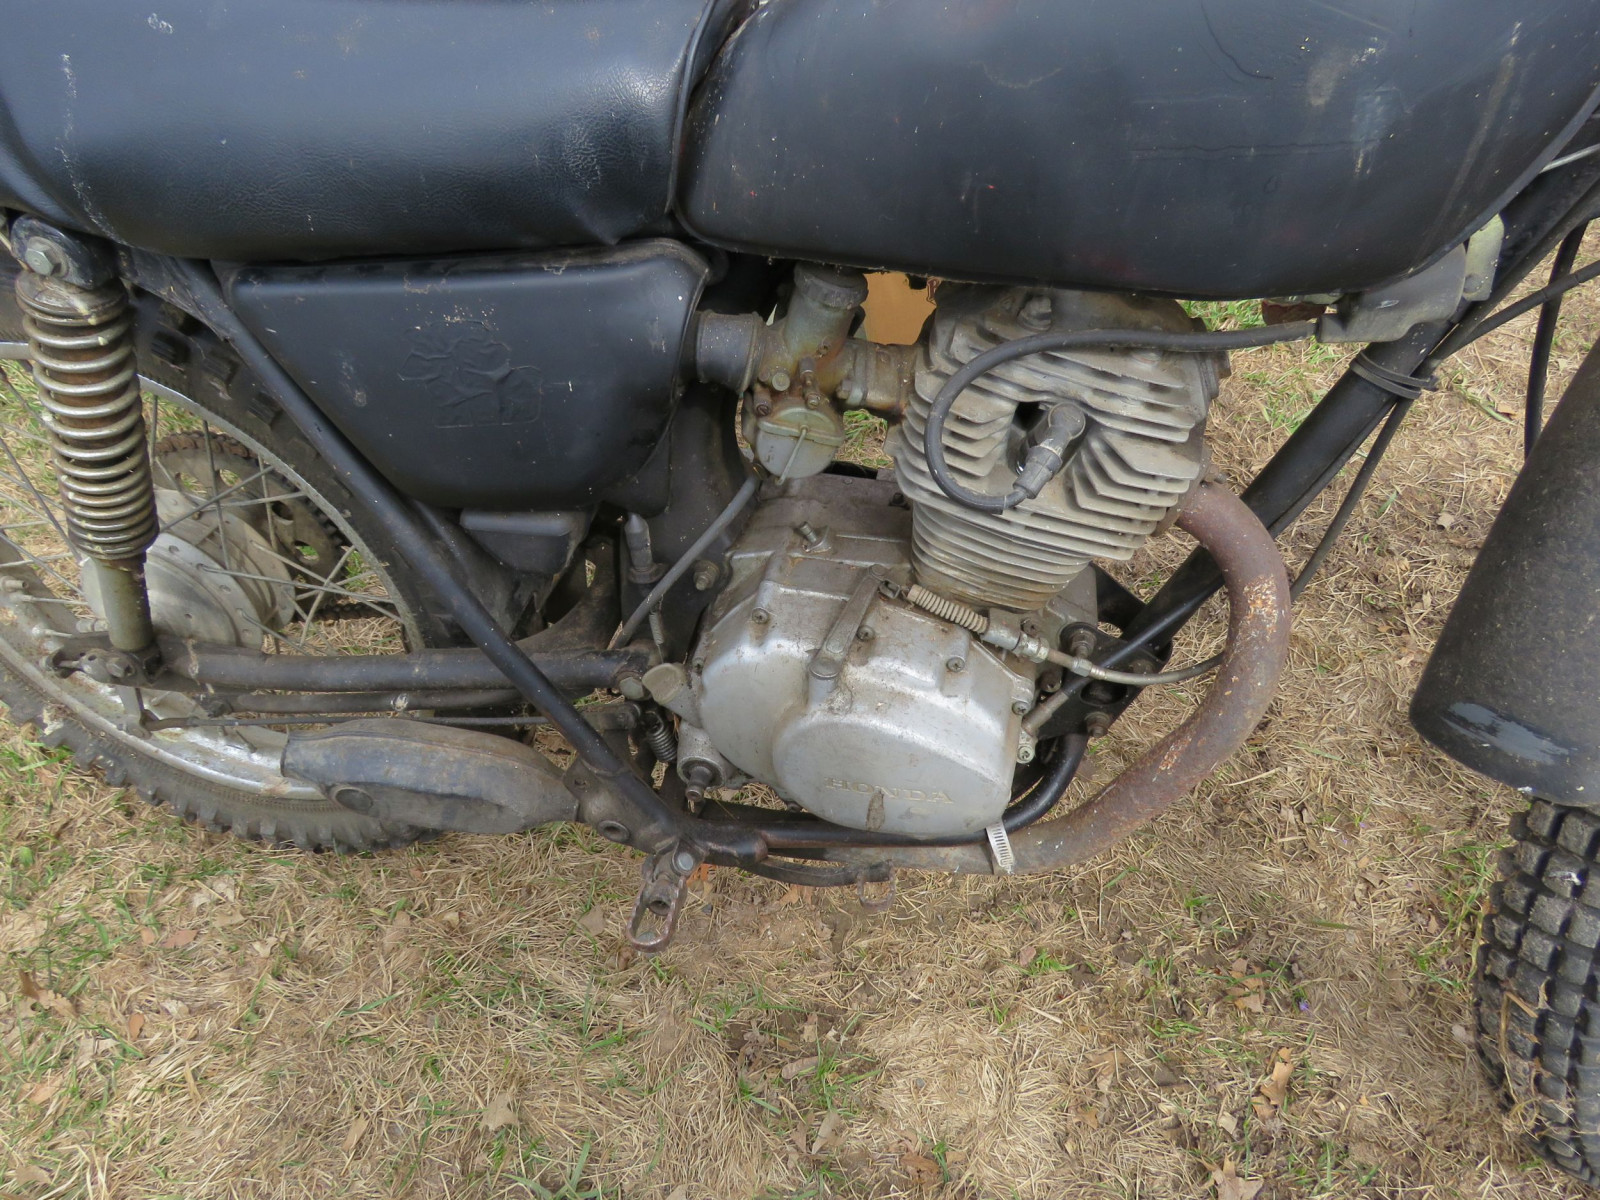 Honda 125XL Motorcycle for Project or parts - Image 6